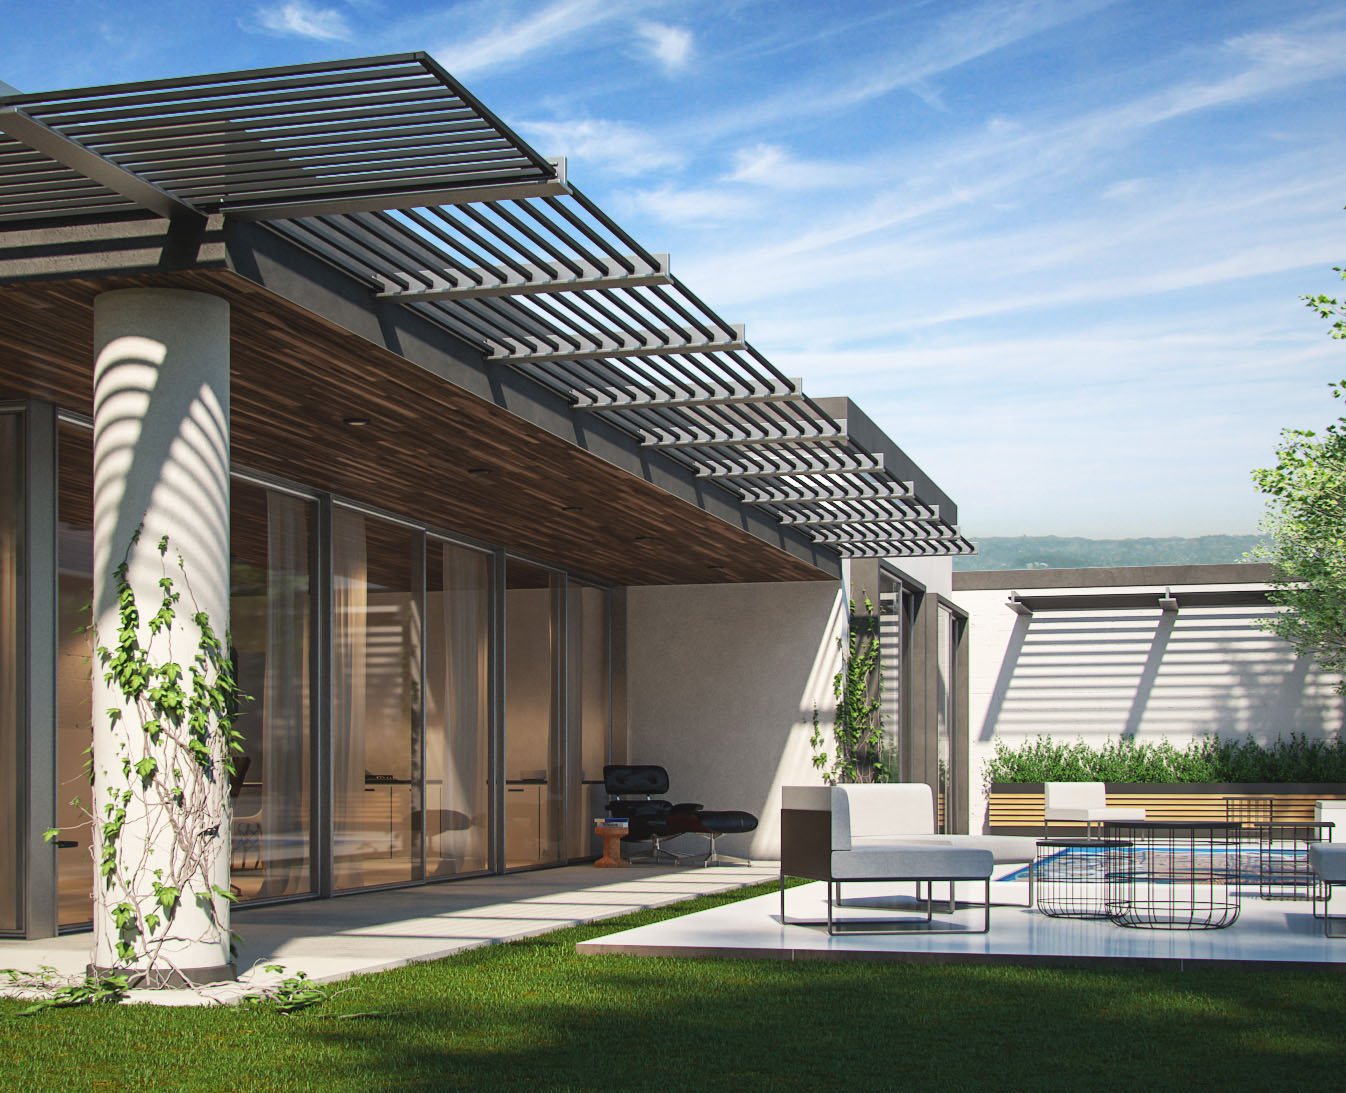 V Ray Tutorial For Residential Exterior In 3dsmax